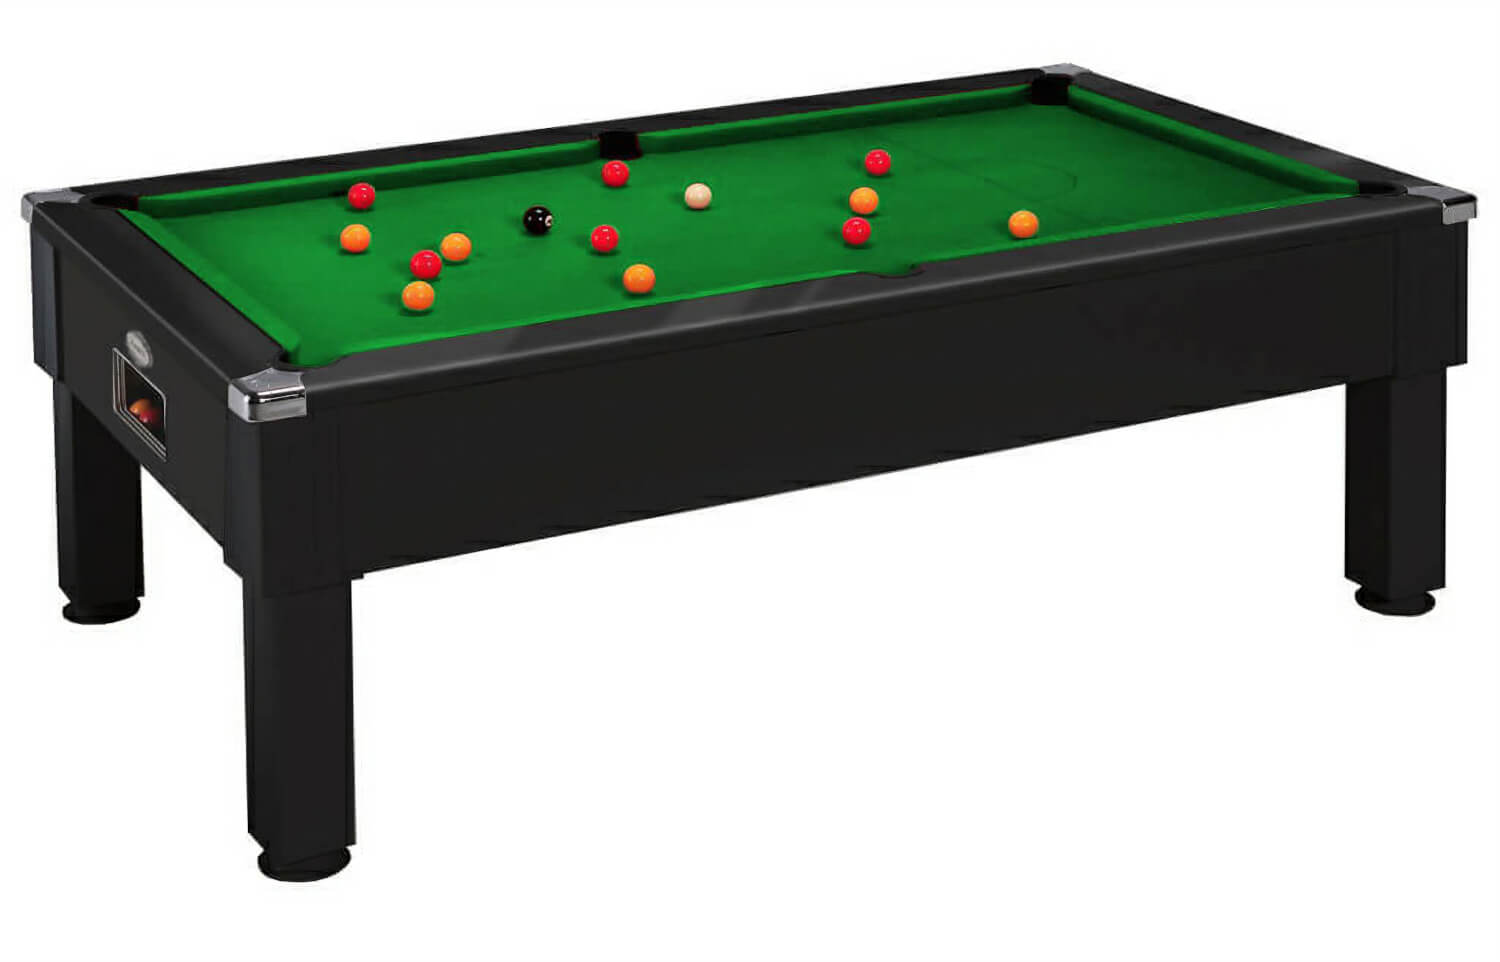 Emirates Pool Table Ft Ft Ft Liberty Games - English pool table